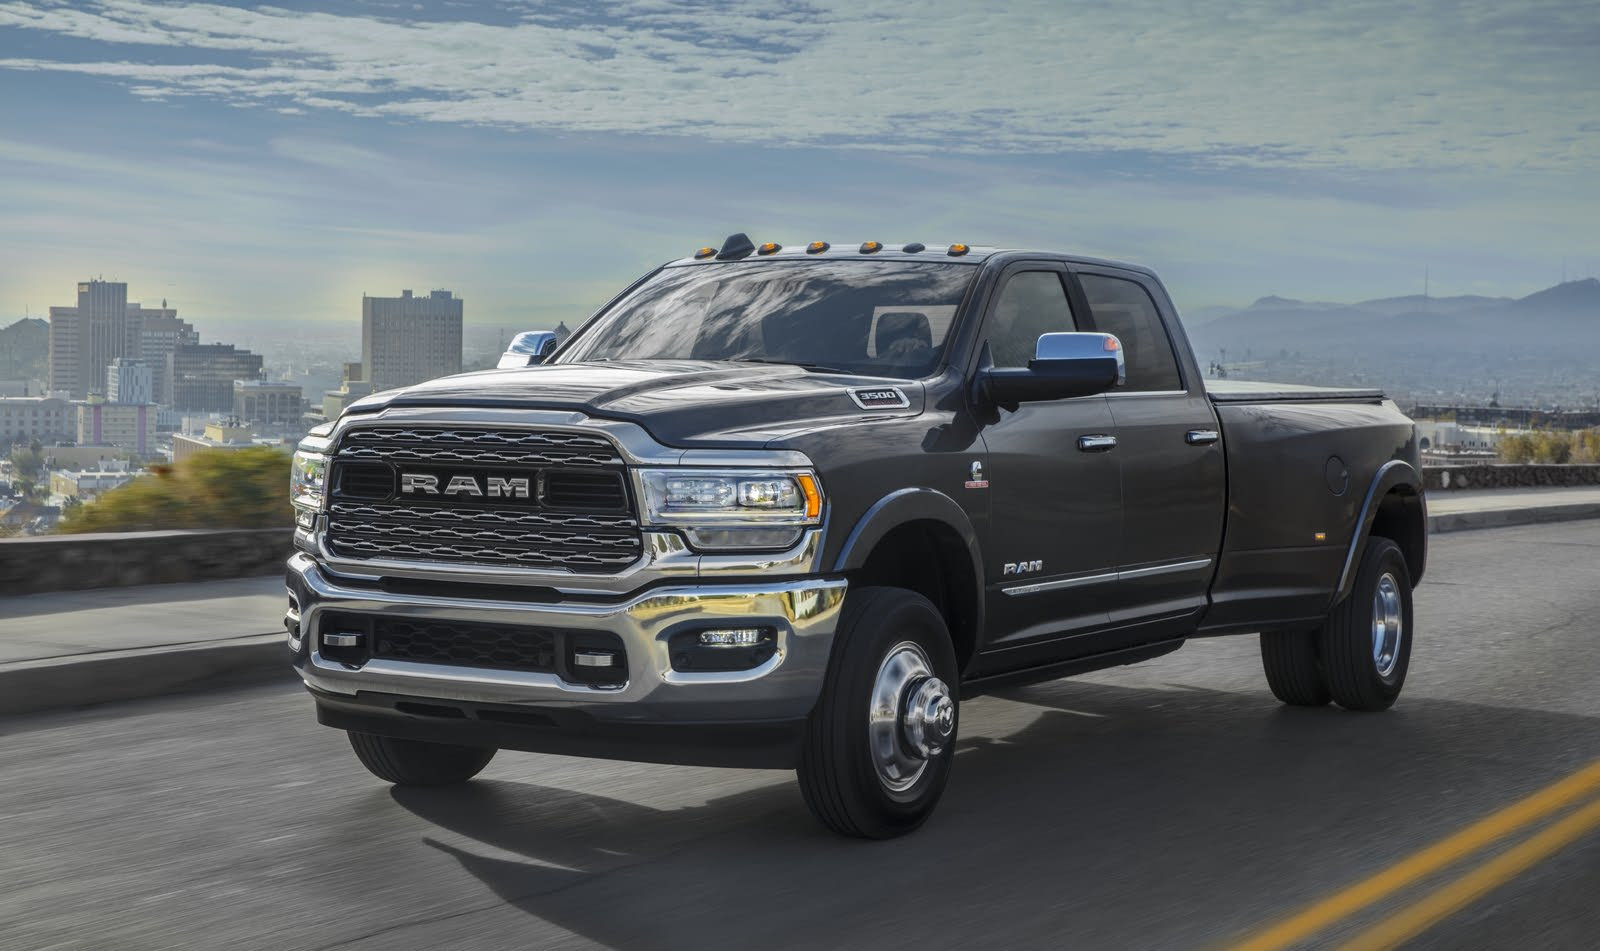 Used 2020 Ram 3500 For Sale With Photos Cargurus